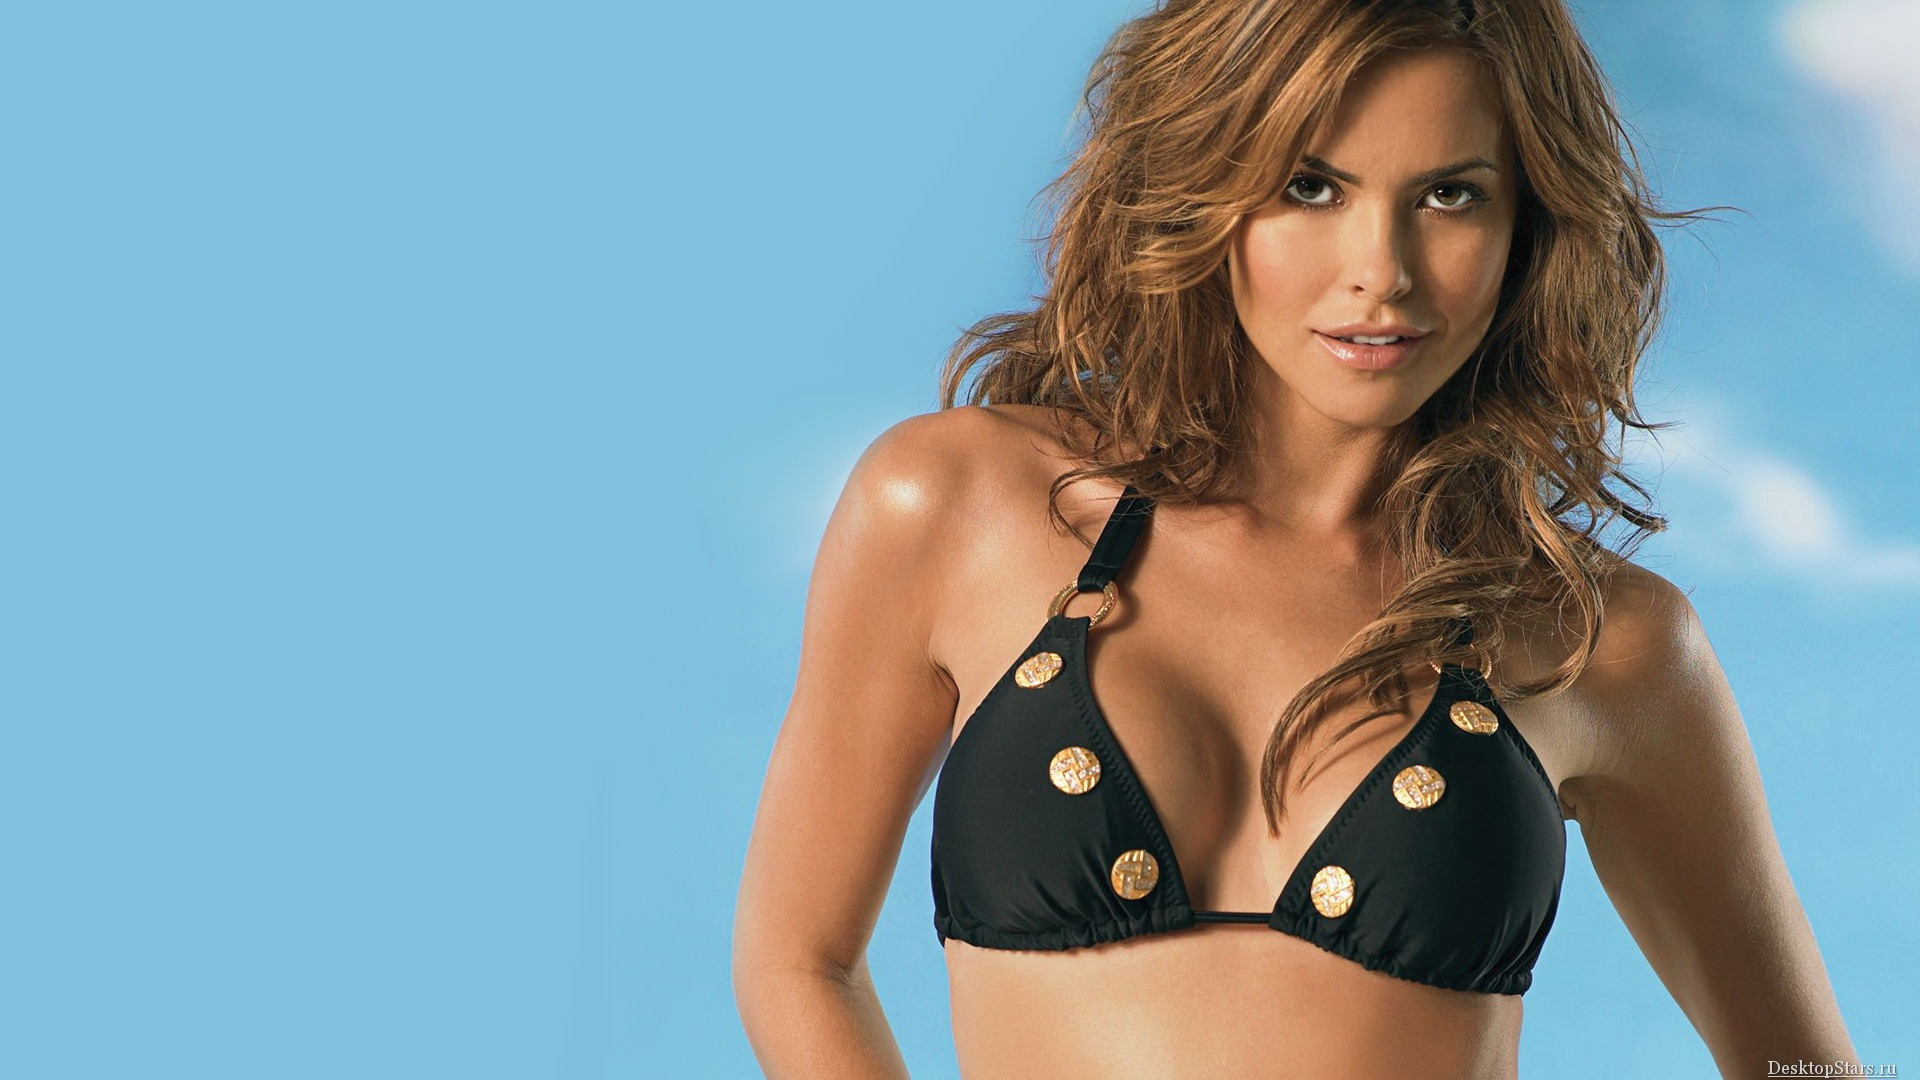 Fernanda Mello #011 - 1920x1080 Wallpapers Pictures Photos Images